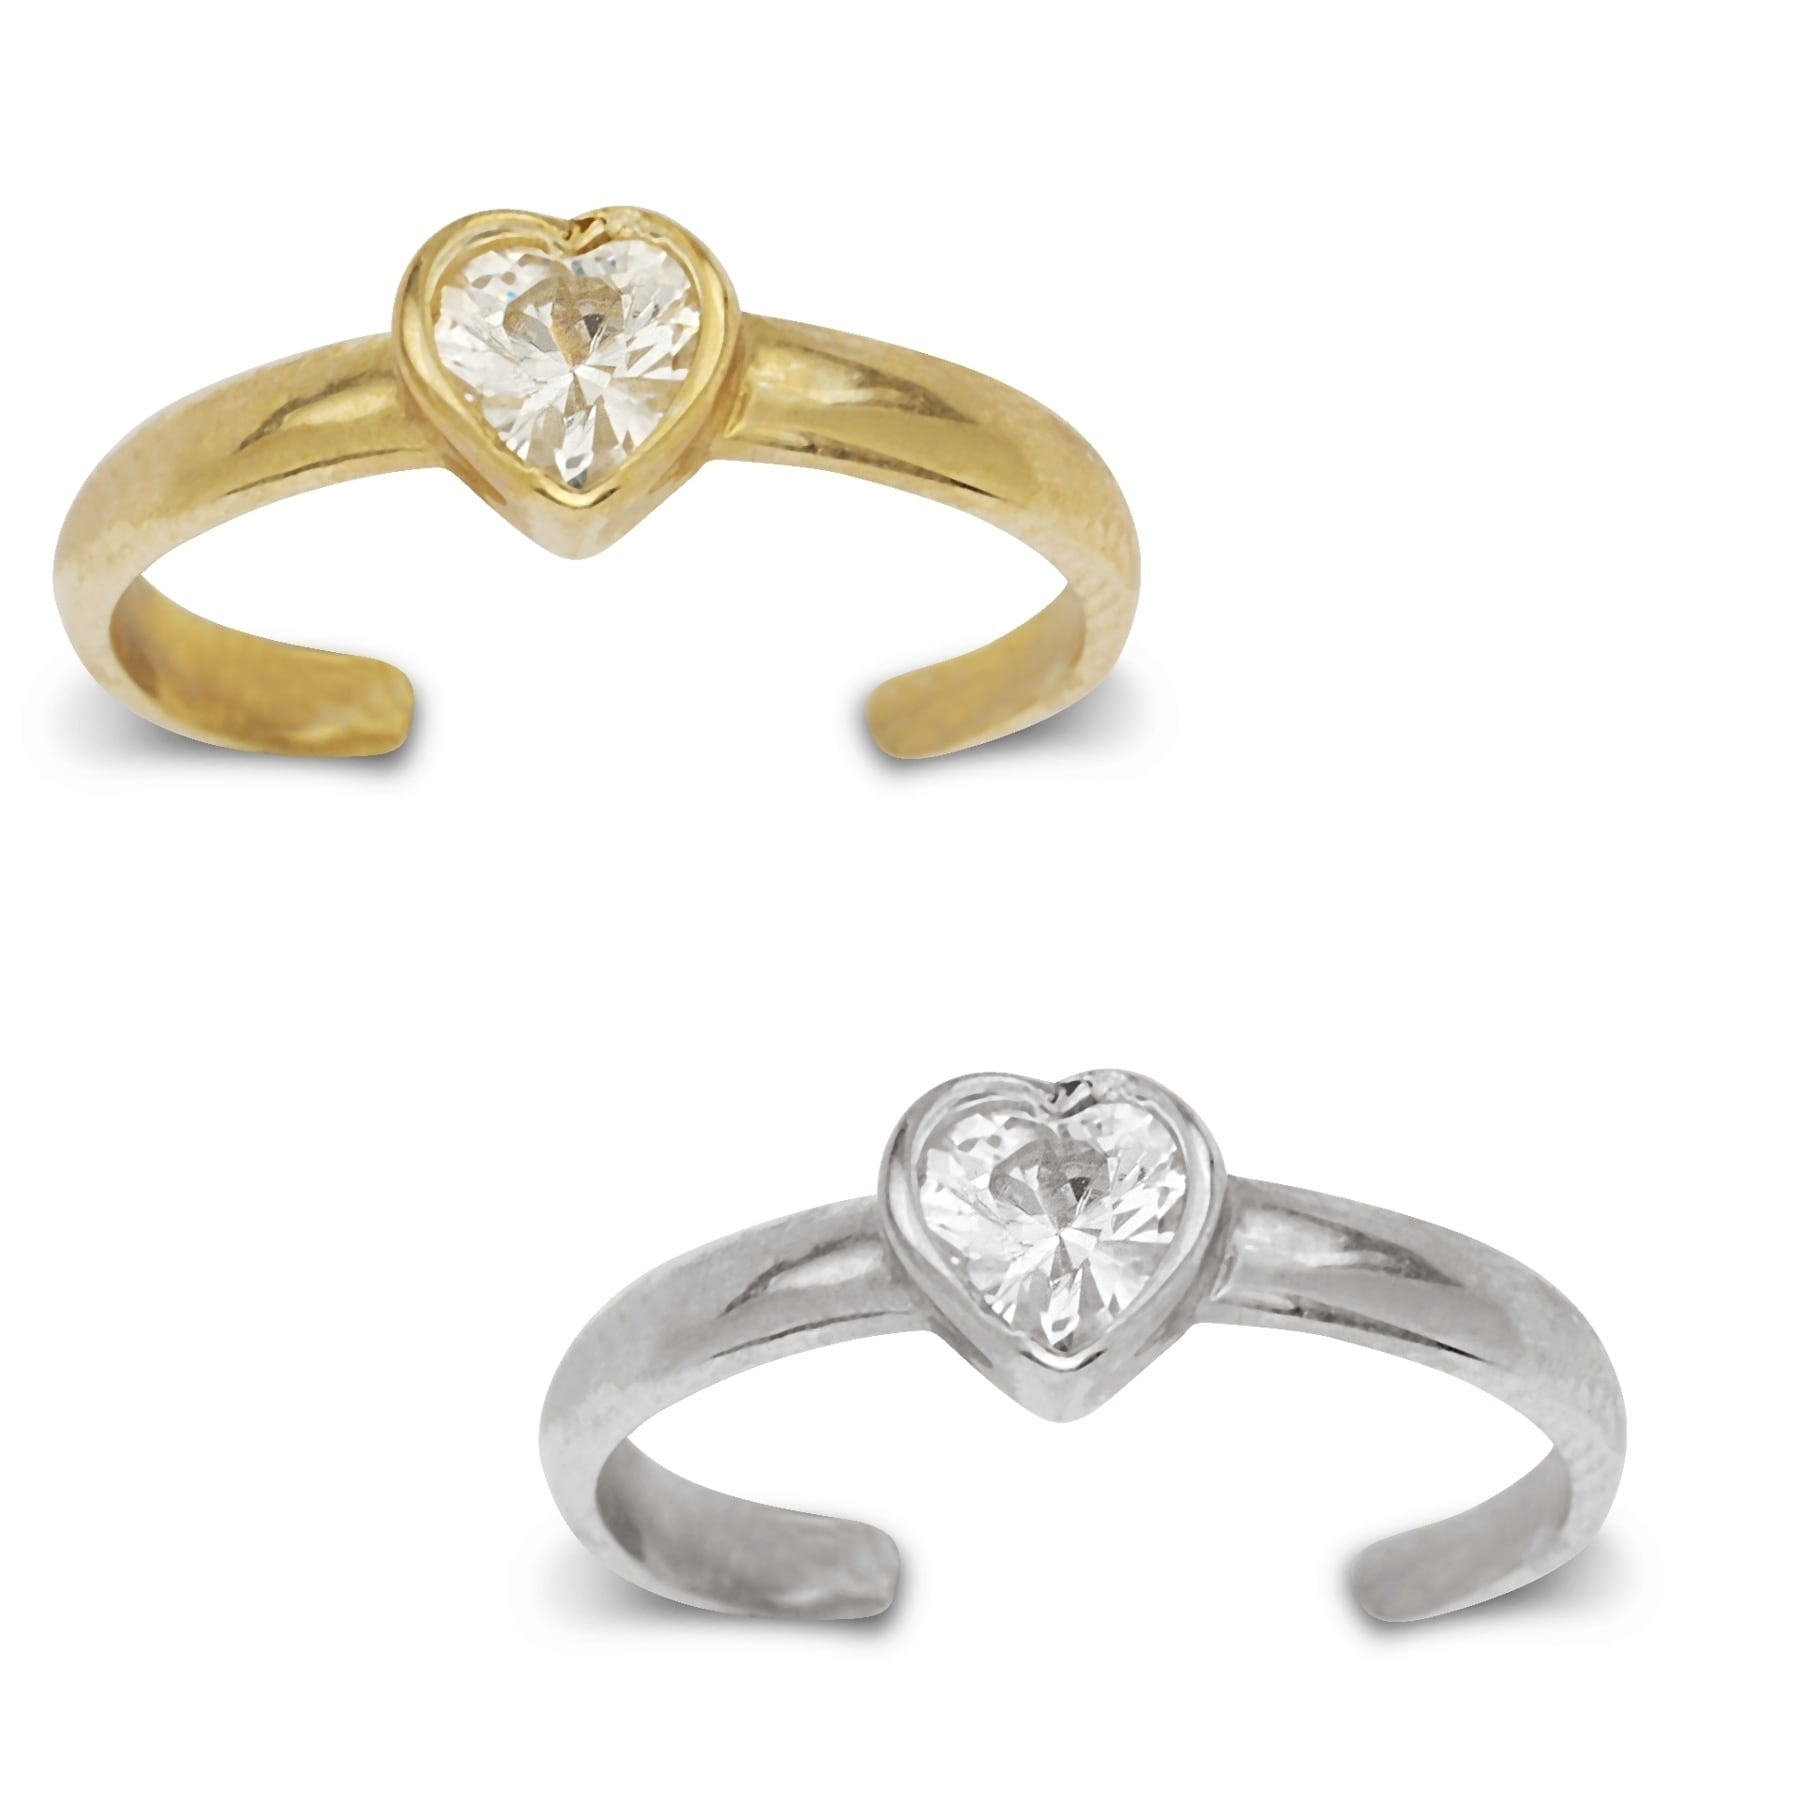 14k Yellow Or White Gold Adjustable Heart Shaped Cubic Zirconia Regarding Recent 14k Toe Rings (View 6 of 25)